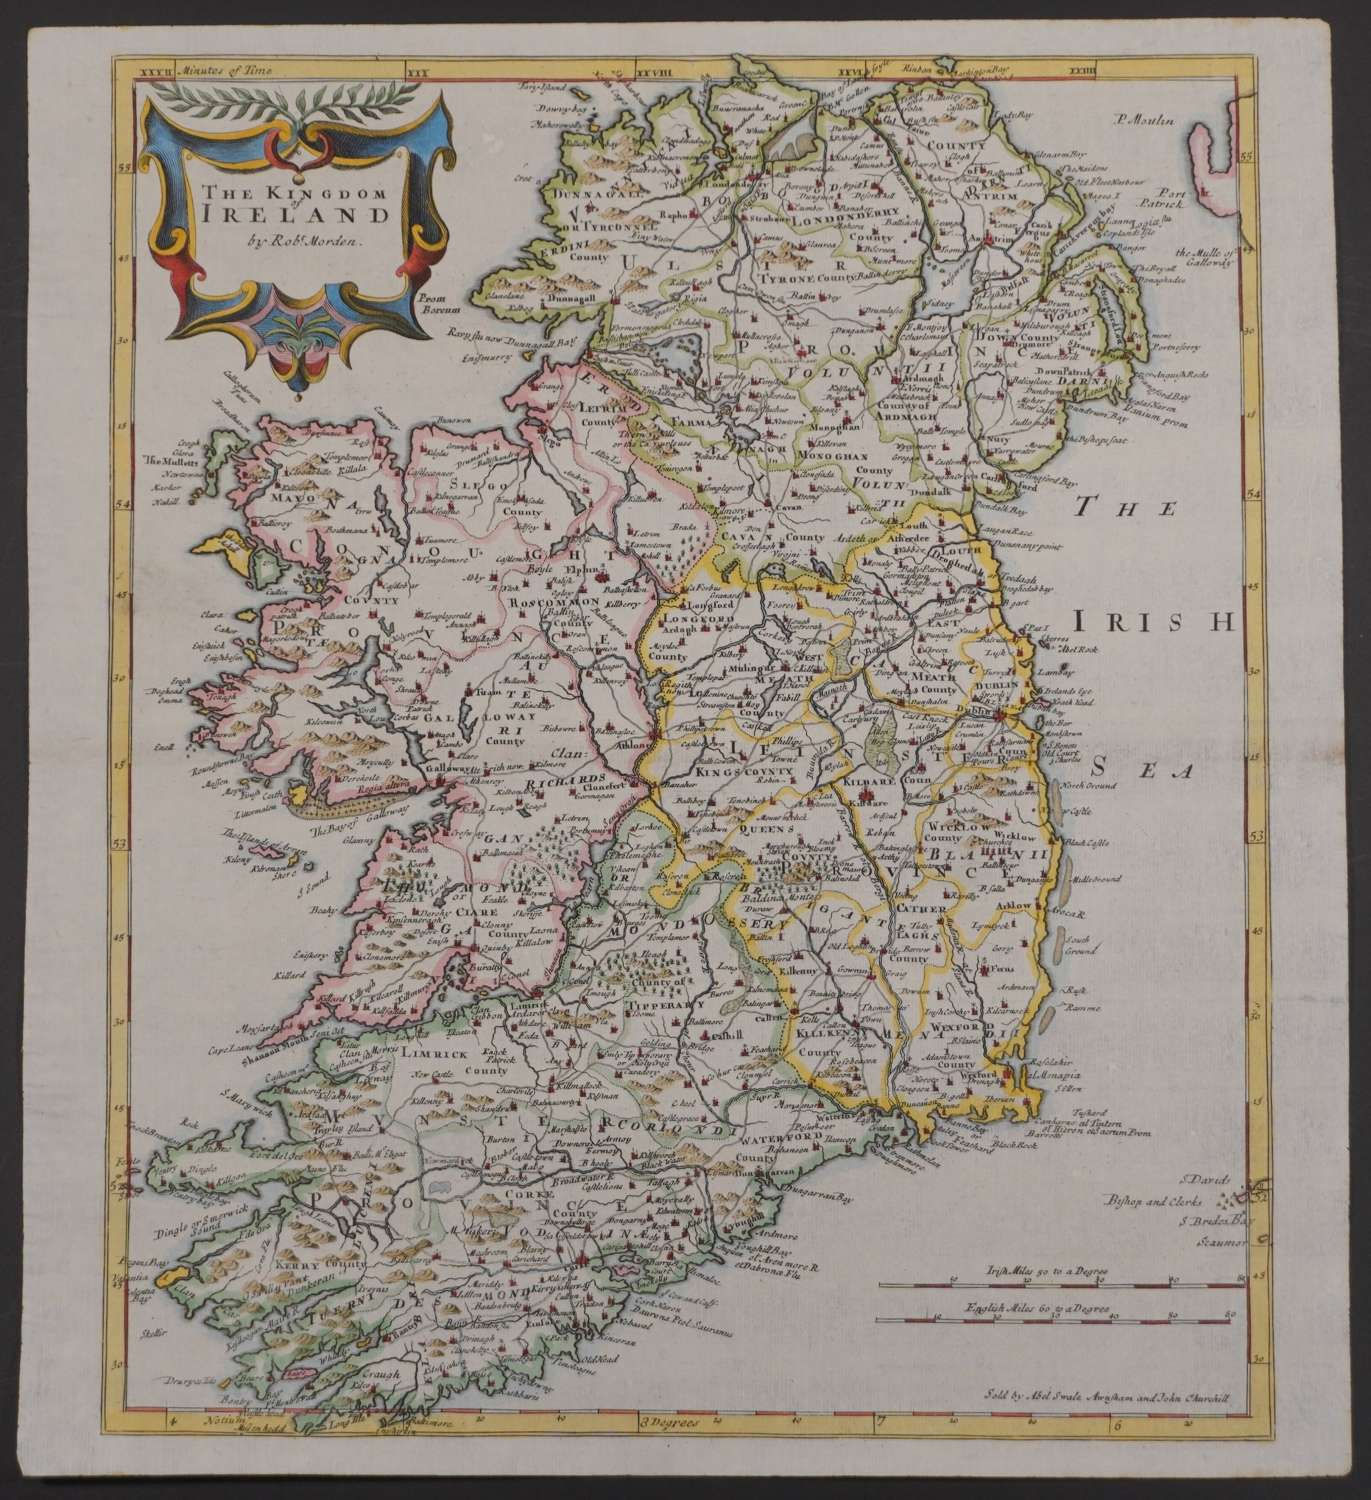 The Kingdom of Ireland 1st edition. by Robert Morden